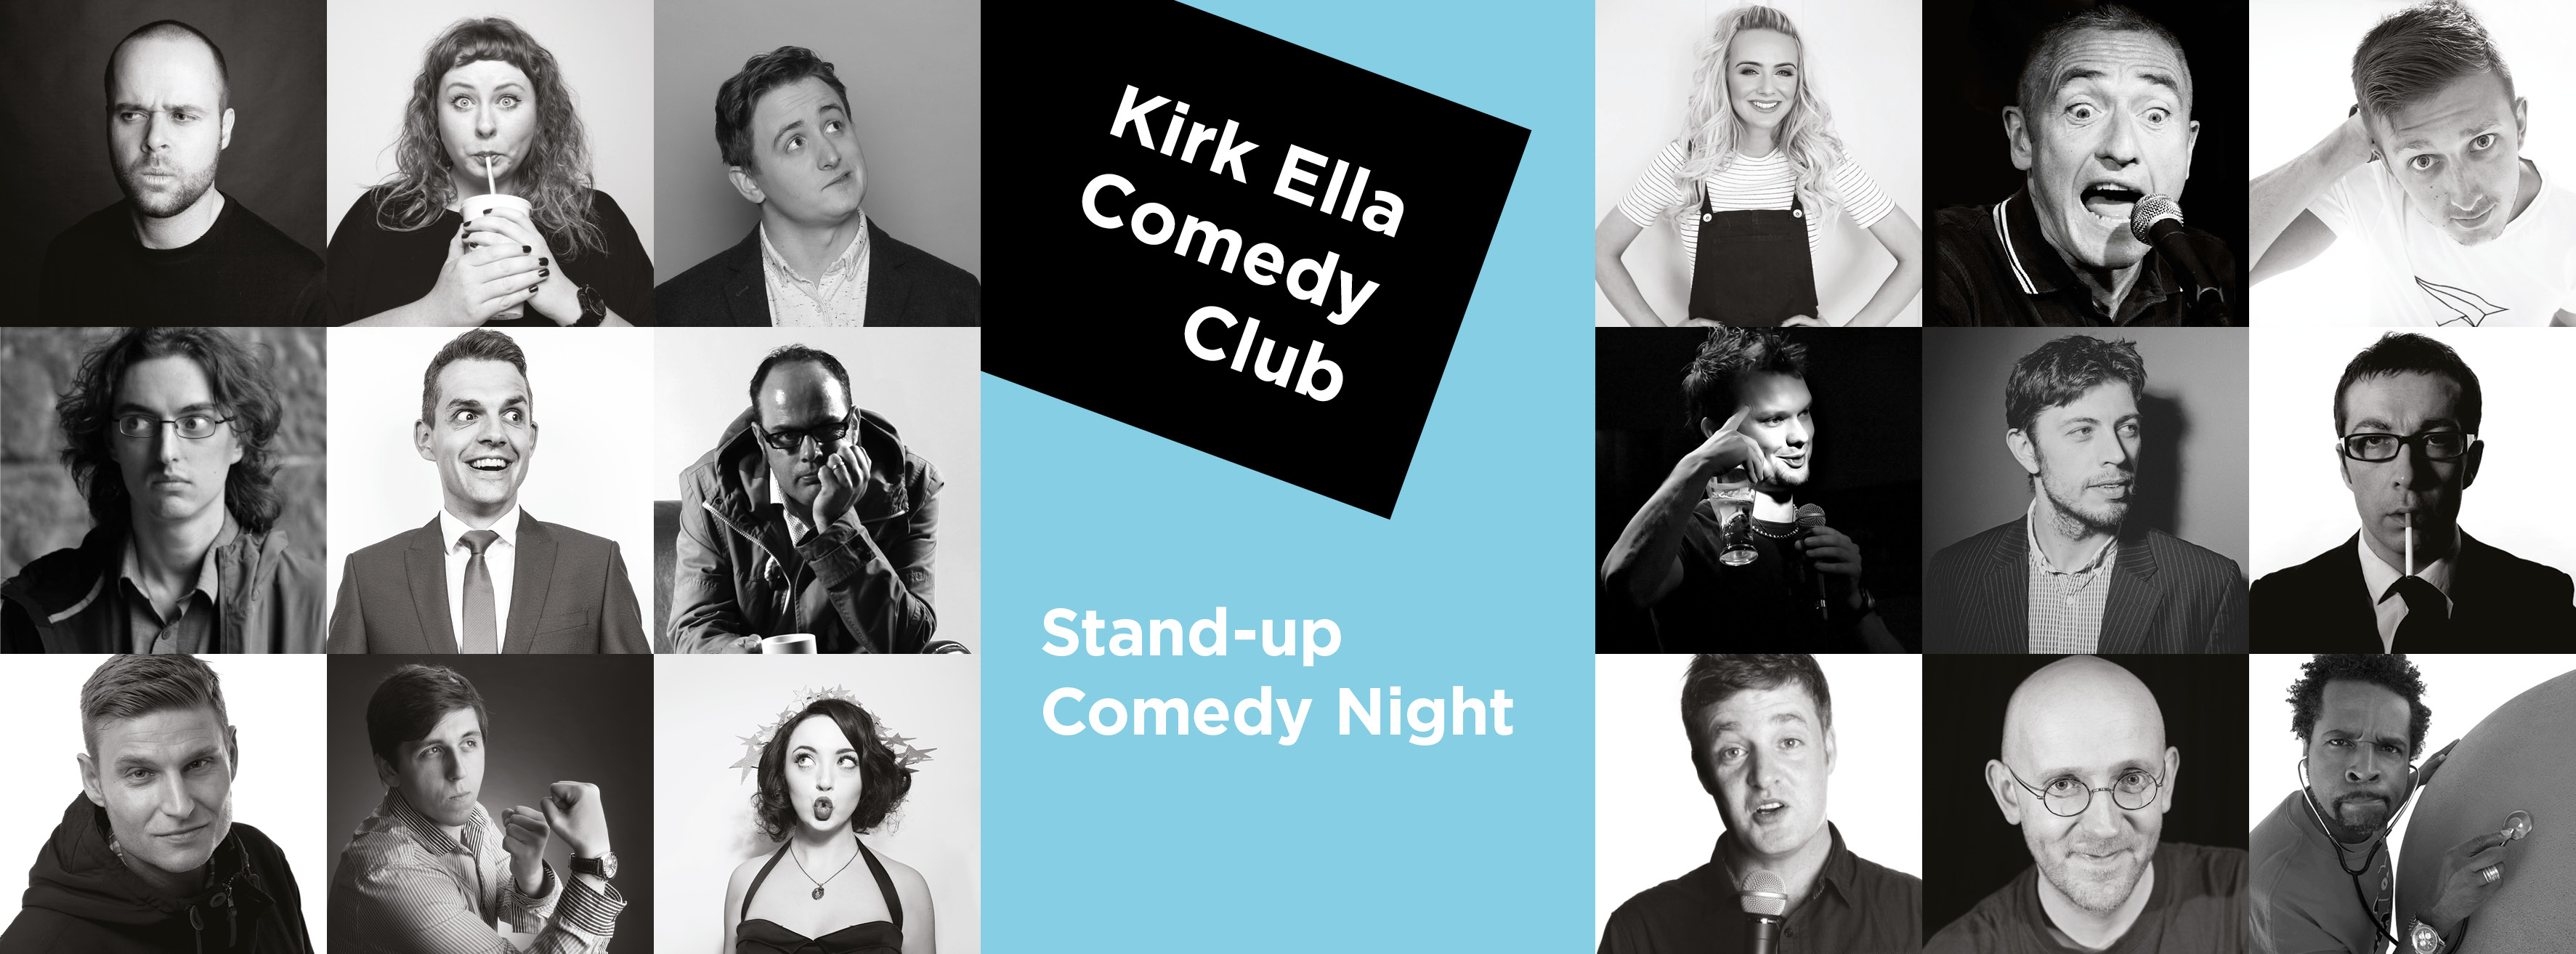 Kirk ella comedy club   generic facebook cover photo